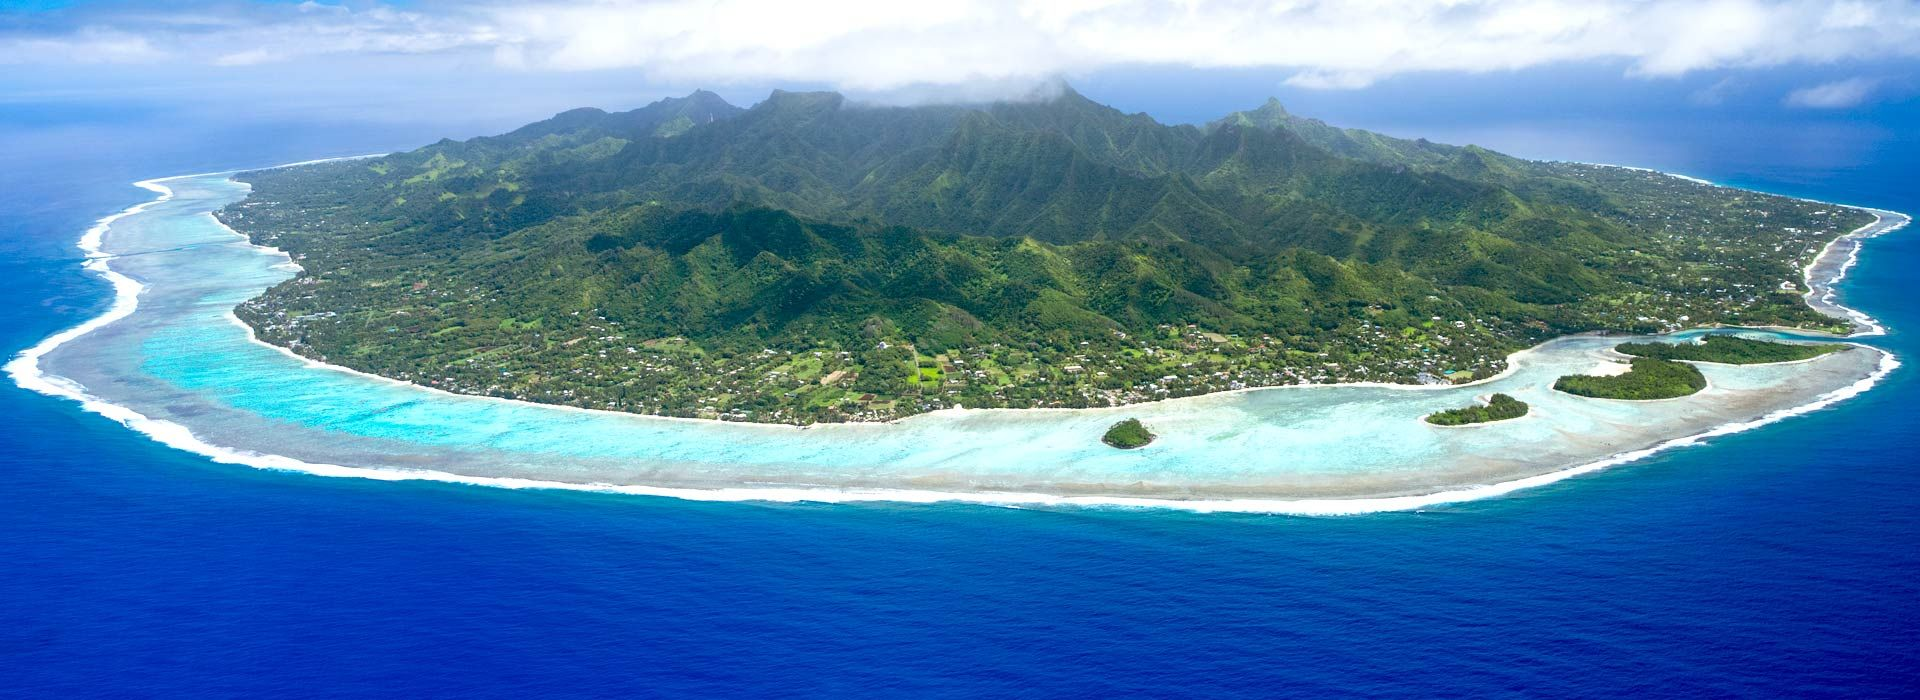 Can You Go To All The Islands In Hawaii